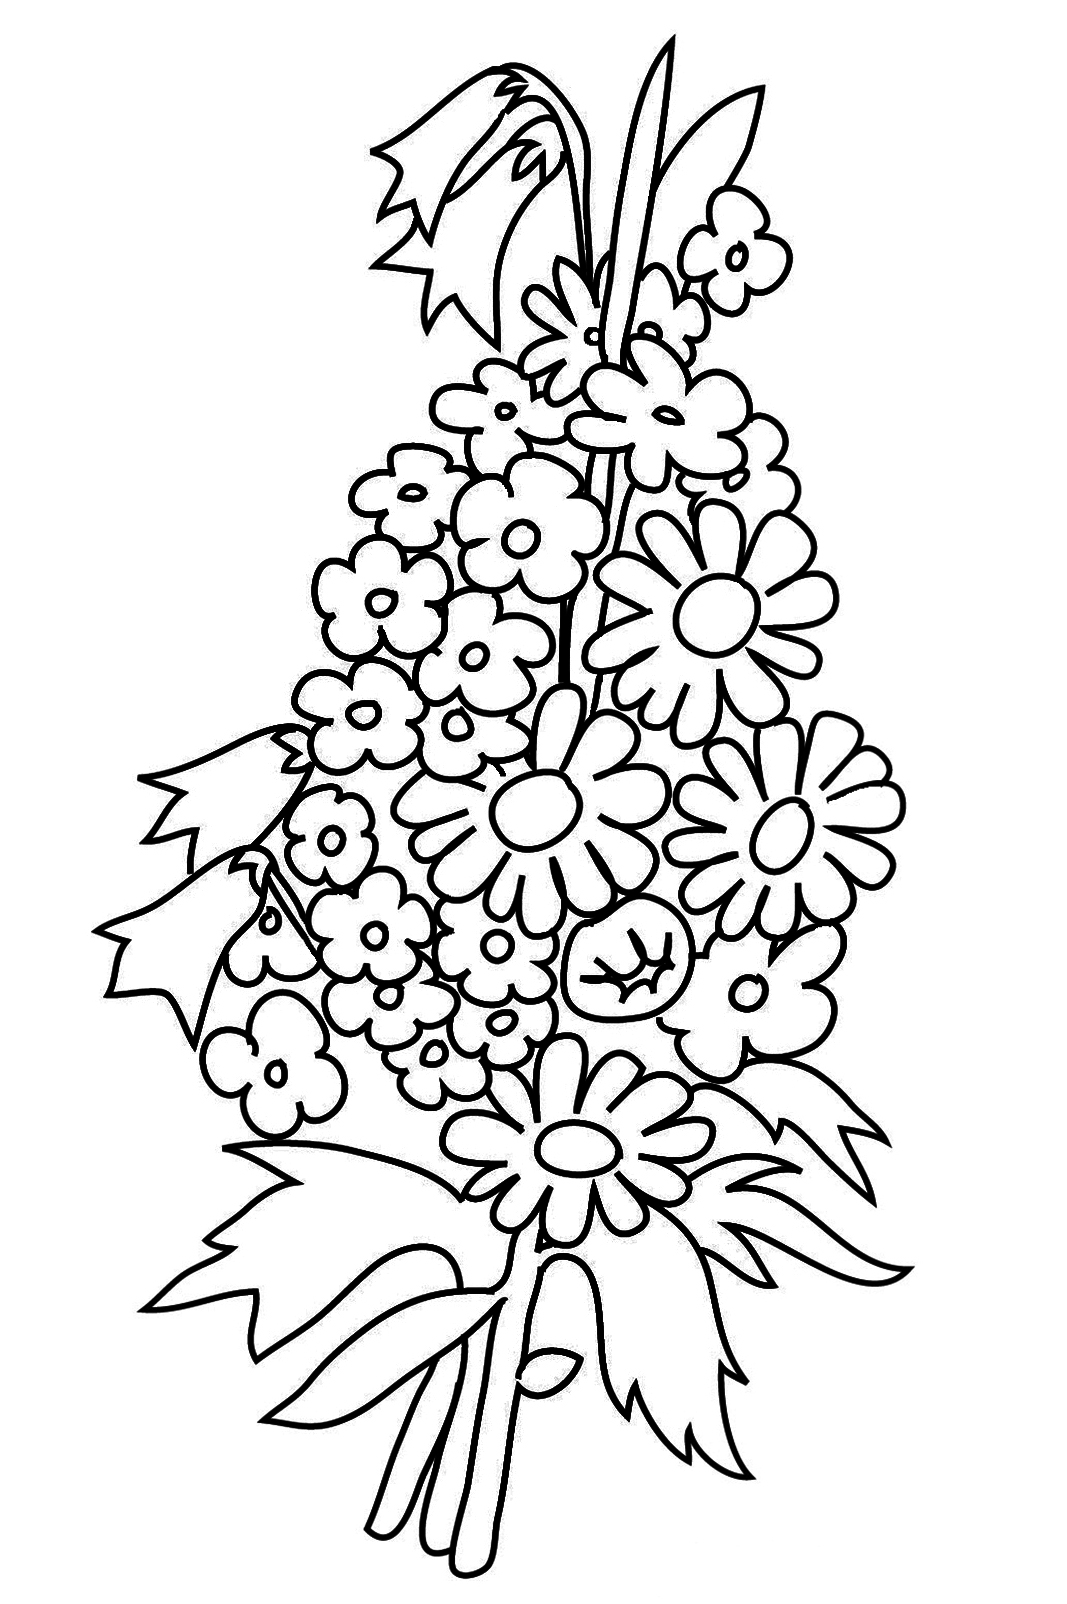 flower coloring book pages free download to print beautiful spring flower coloring flower book pages coloring